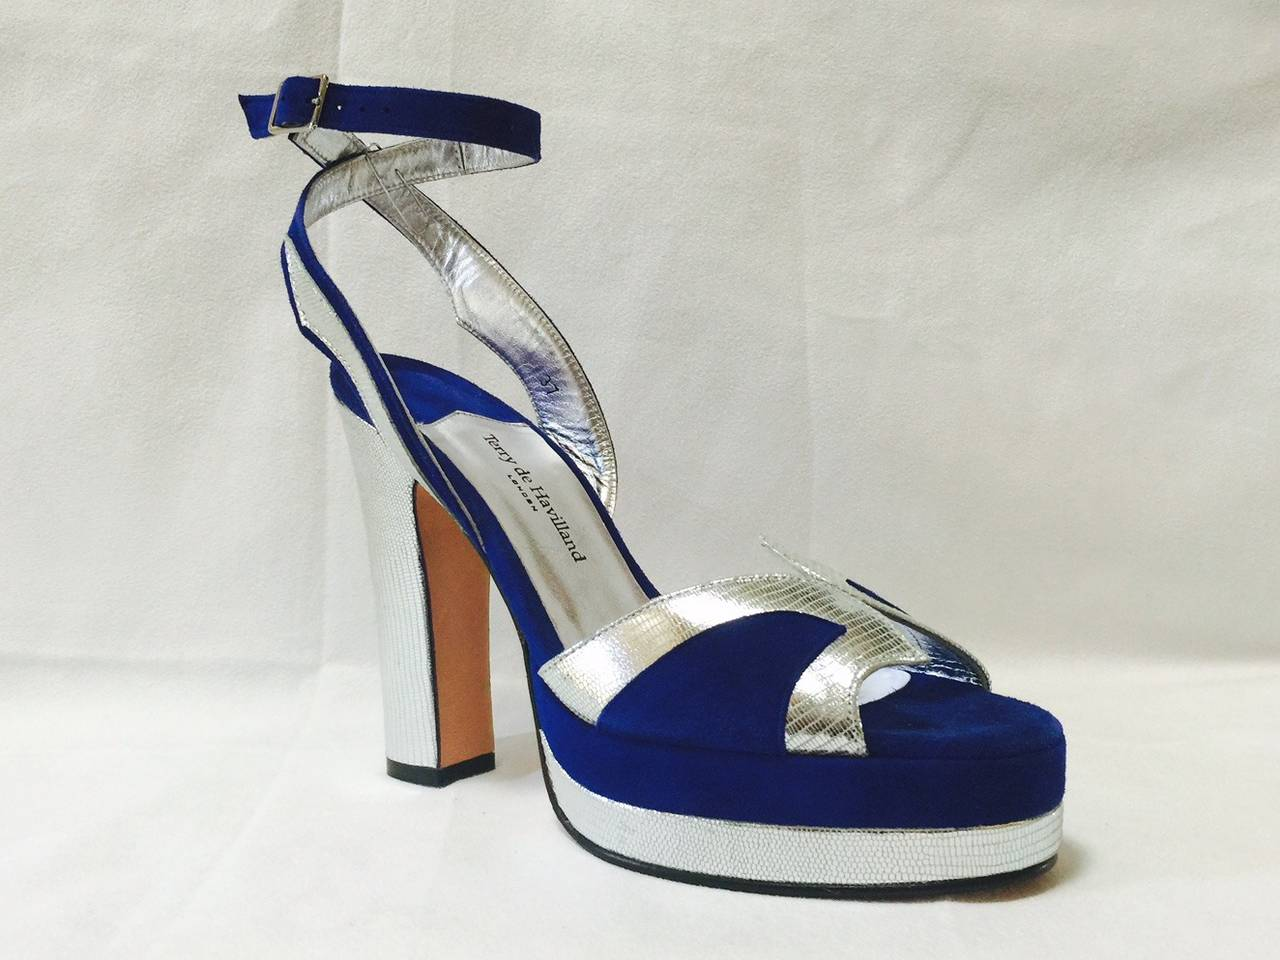 New Terry de Havilland Stacked High Heel Sandals are worthy of Studio 54!  Exquisite, blue suede is perfectly complemented by luxurious silver python heels, platforms, and decorative details!  Features also include peep toe, adjustable ankle strap,